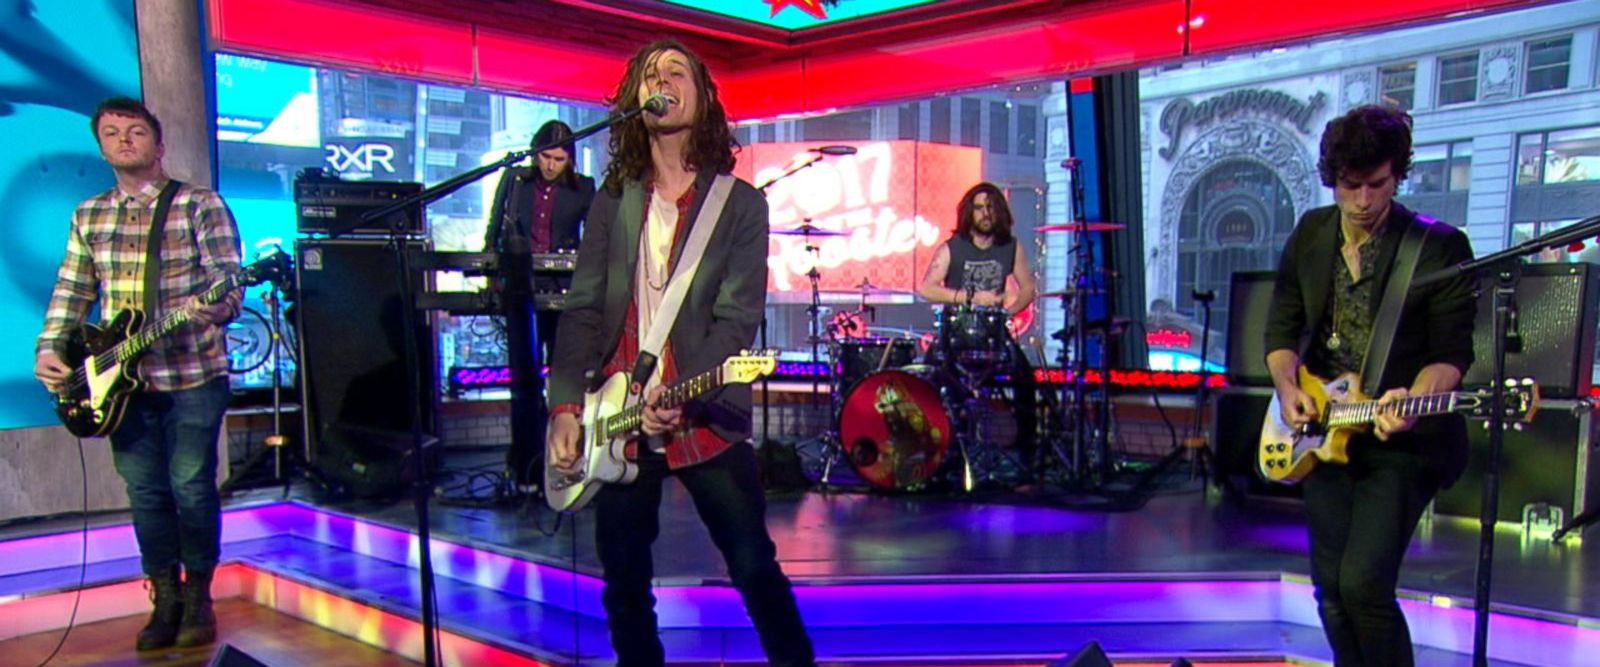 VIDEO: CRX Performs 'Slow Down' Live on 'GMA'